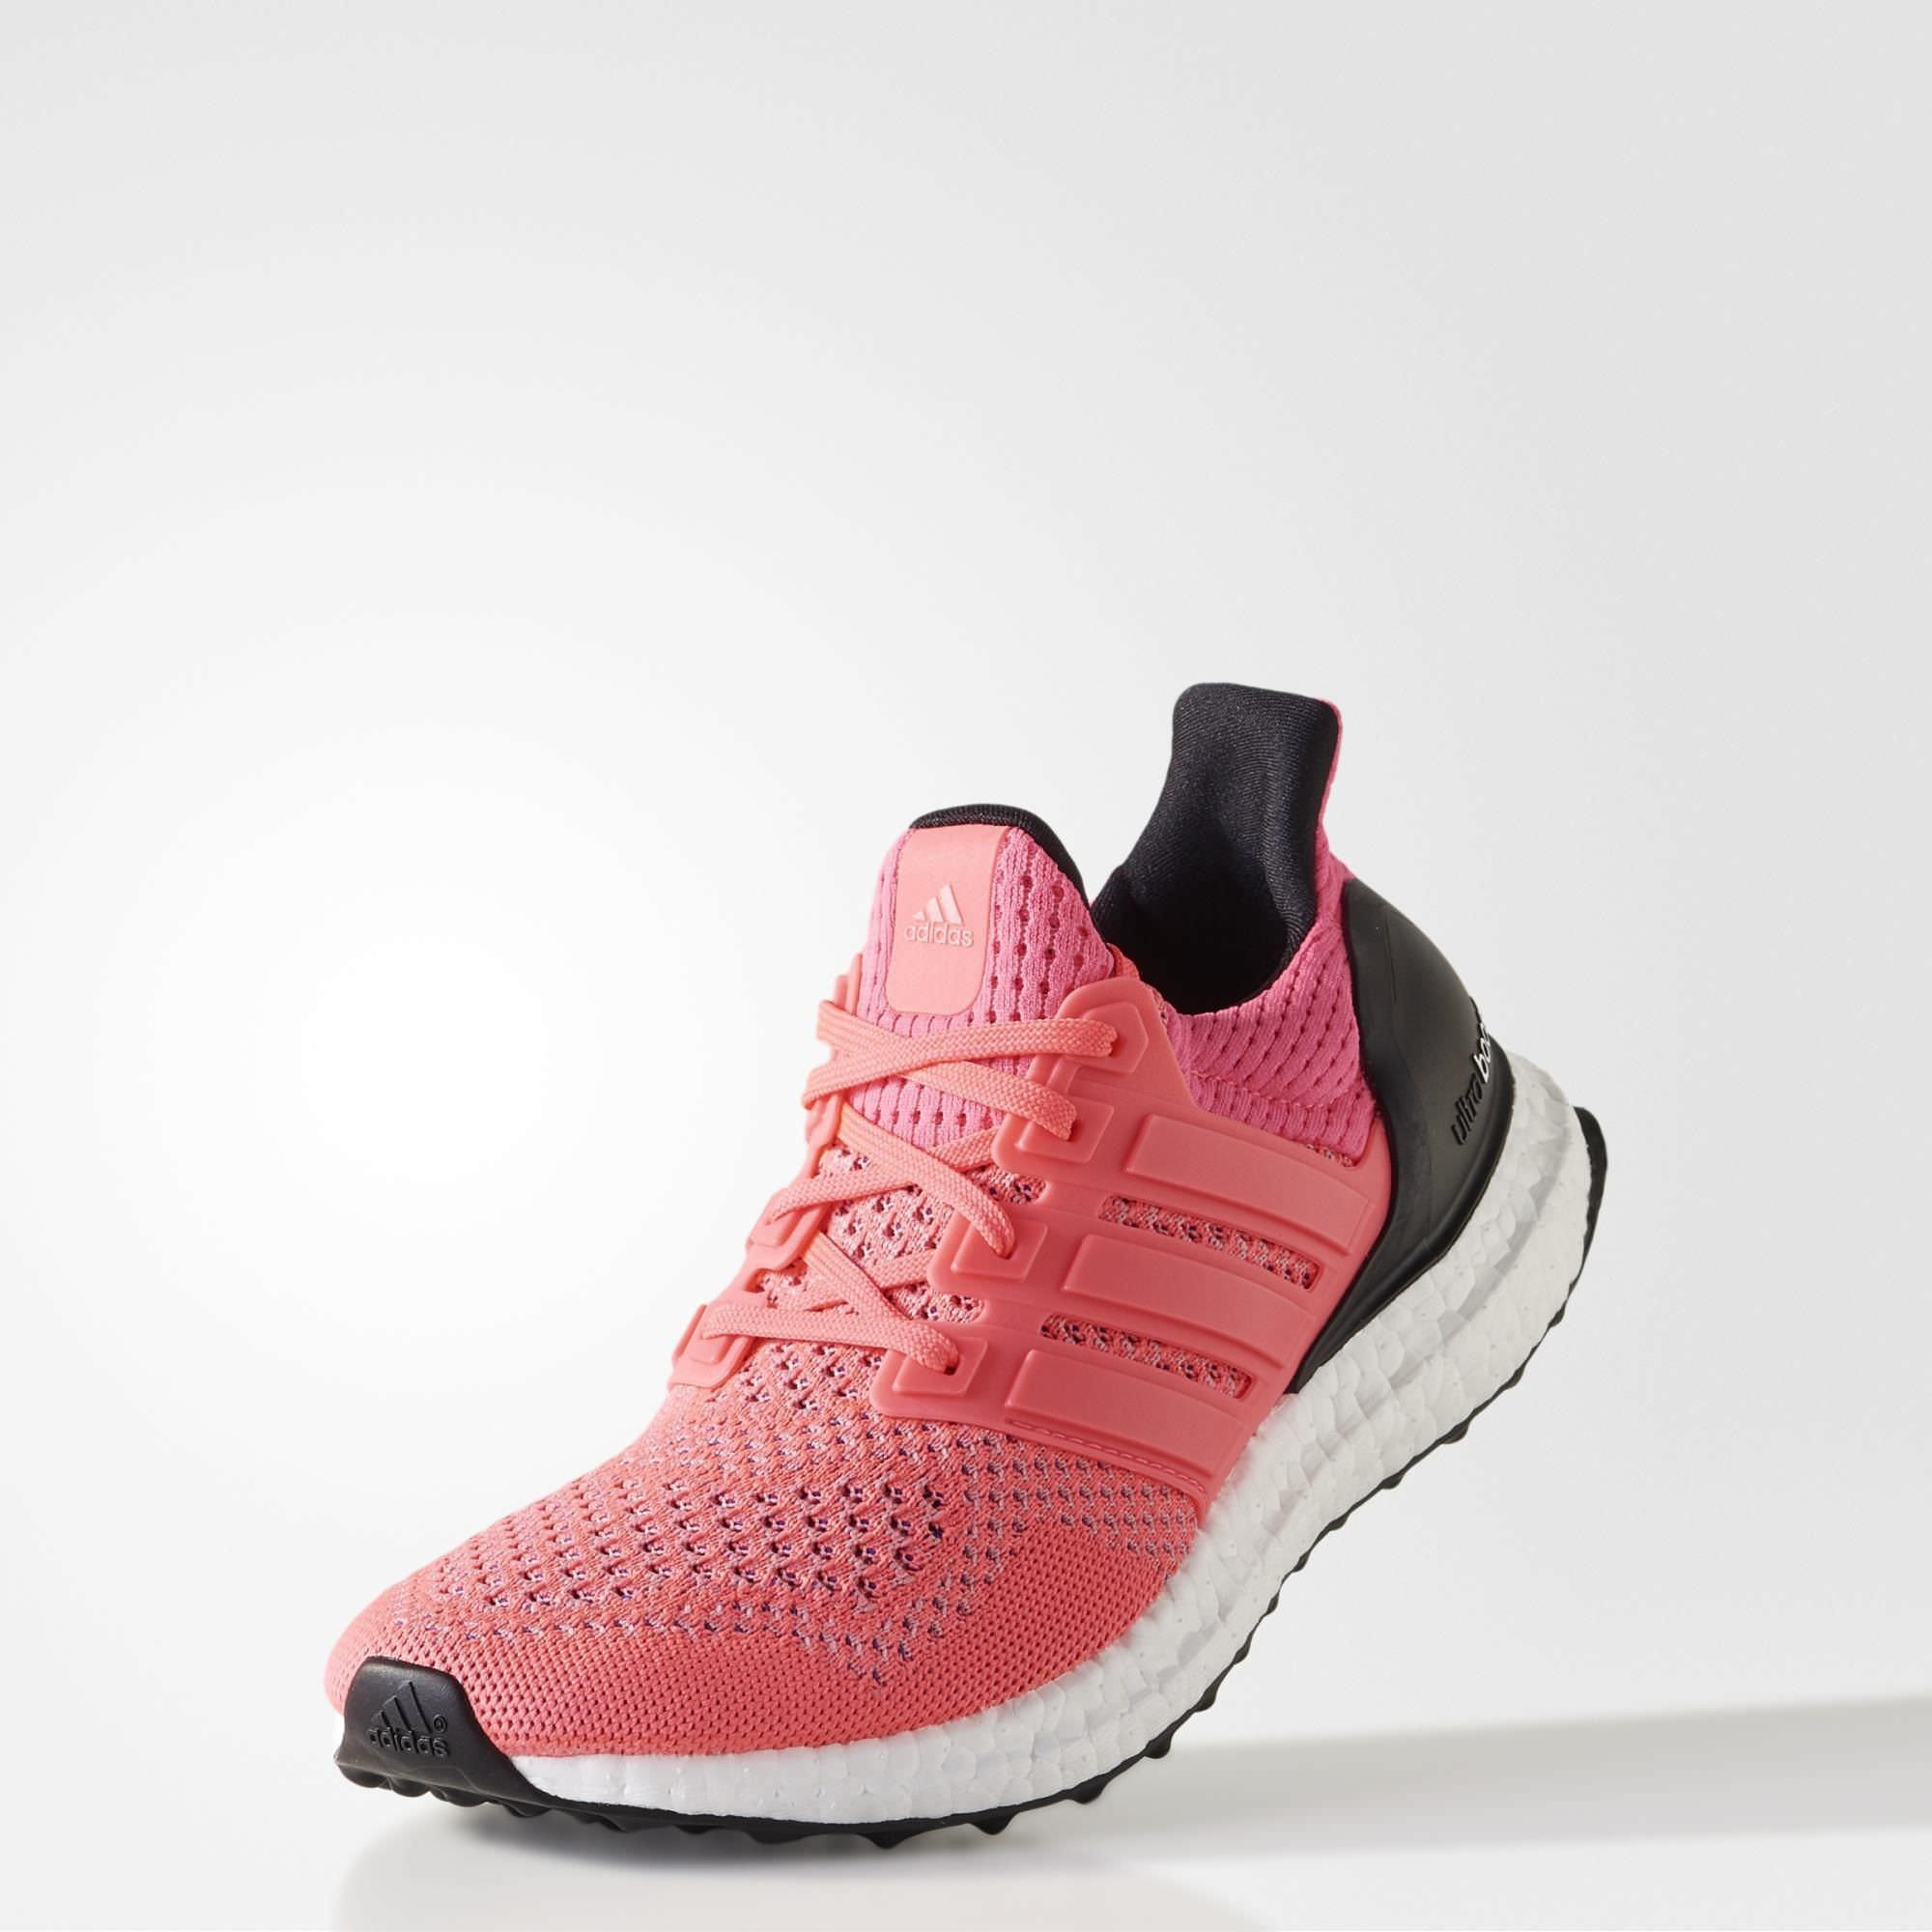 2f8e3a157ab4 Adidas Womens Ultra Boost Running Shoes - Flash Red Core Black ...